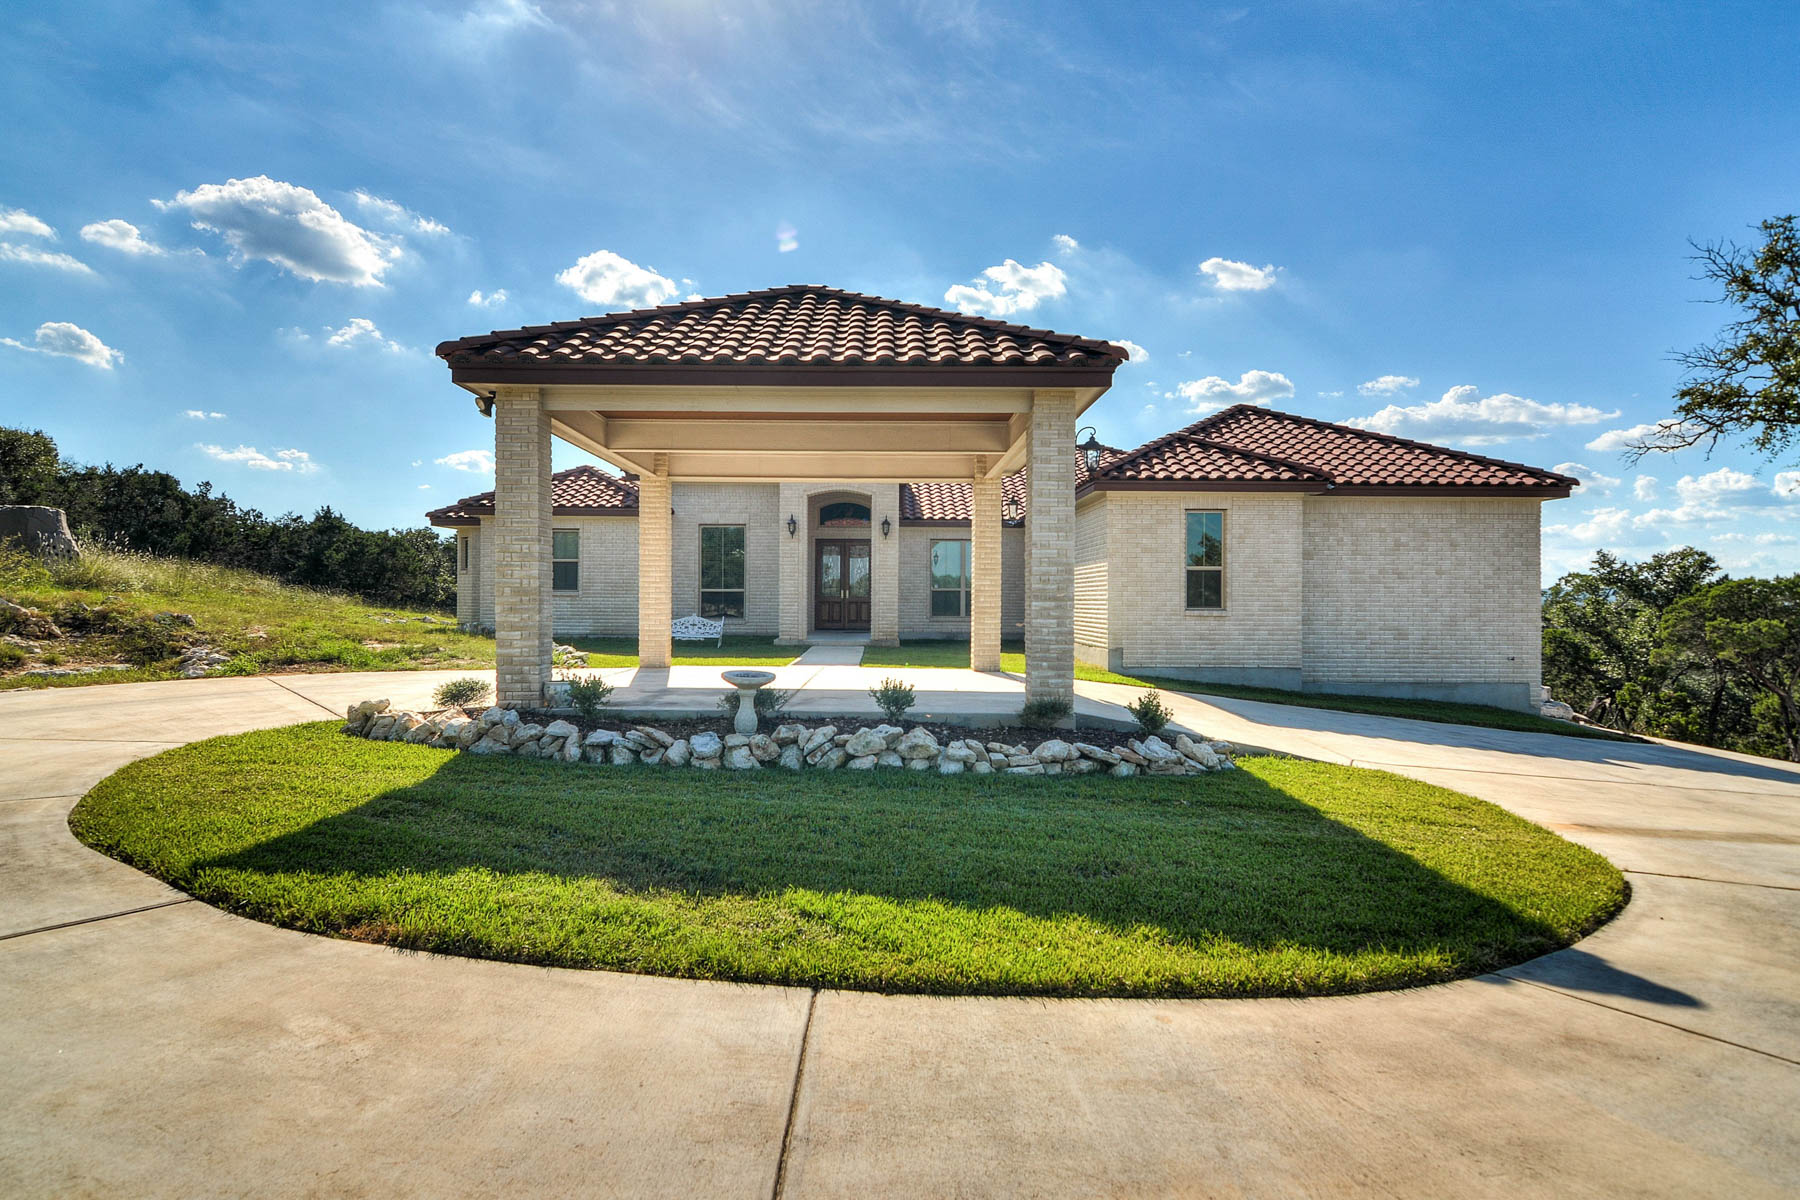 Single Family Home for Sale at Beautiful Custom Holloway Hill Country Home 22813 East Range San Antonio, Texas 78255 United States